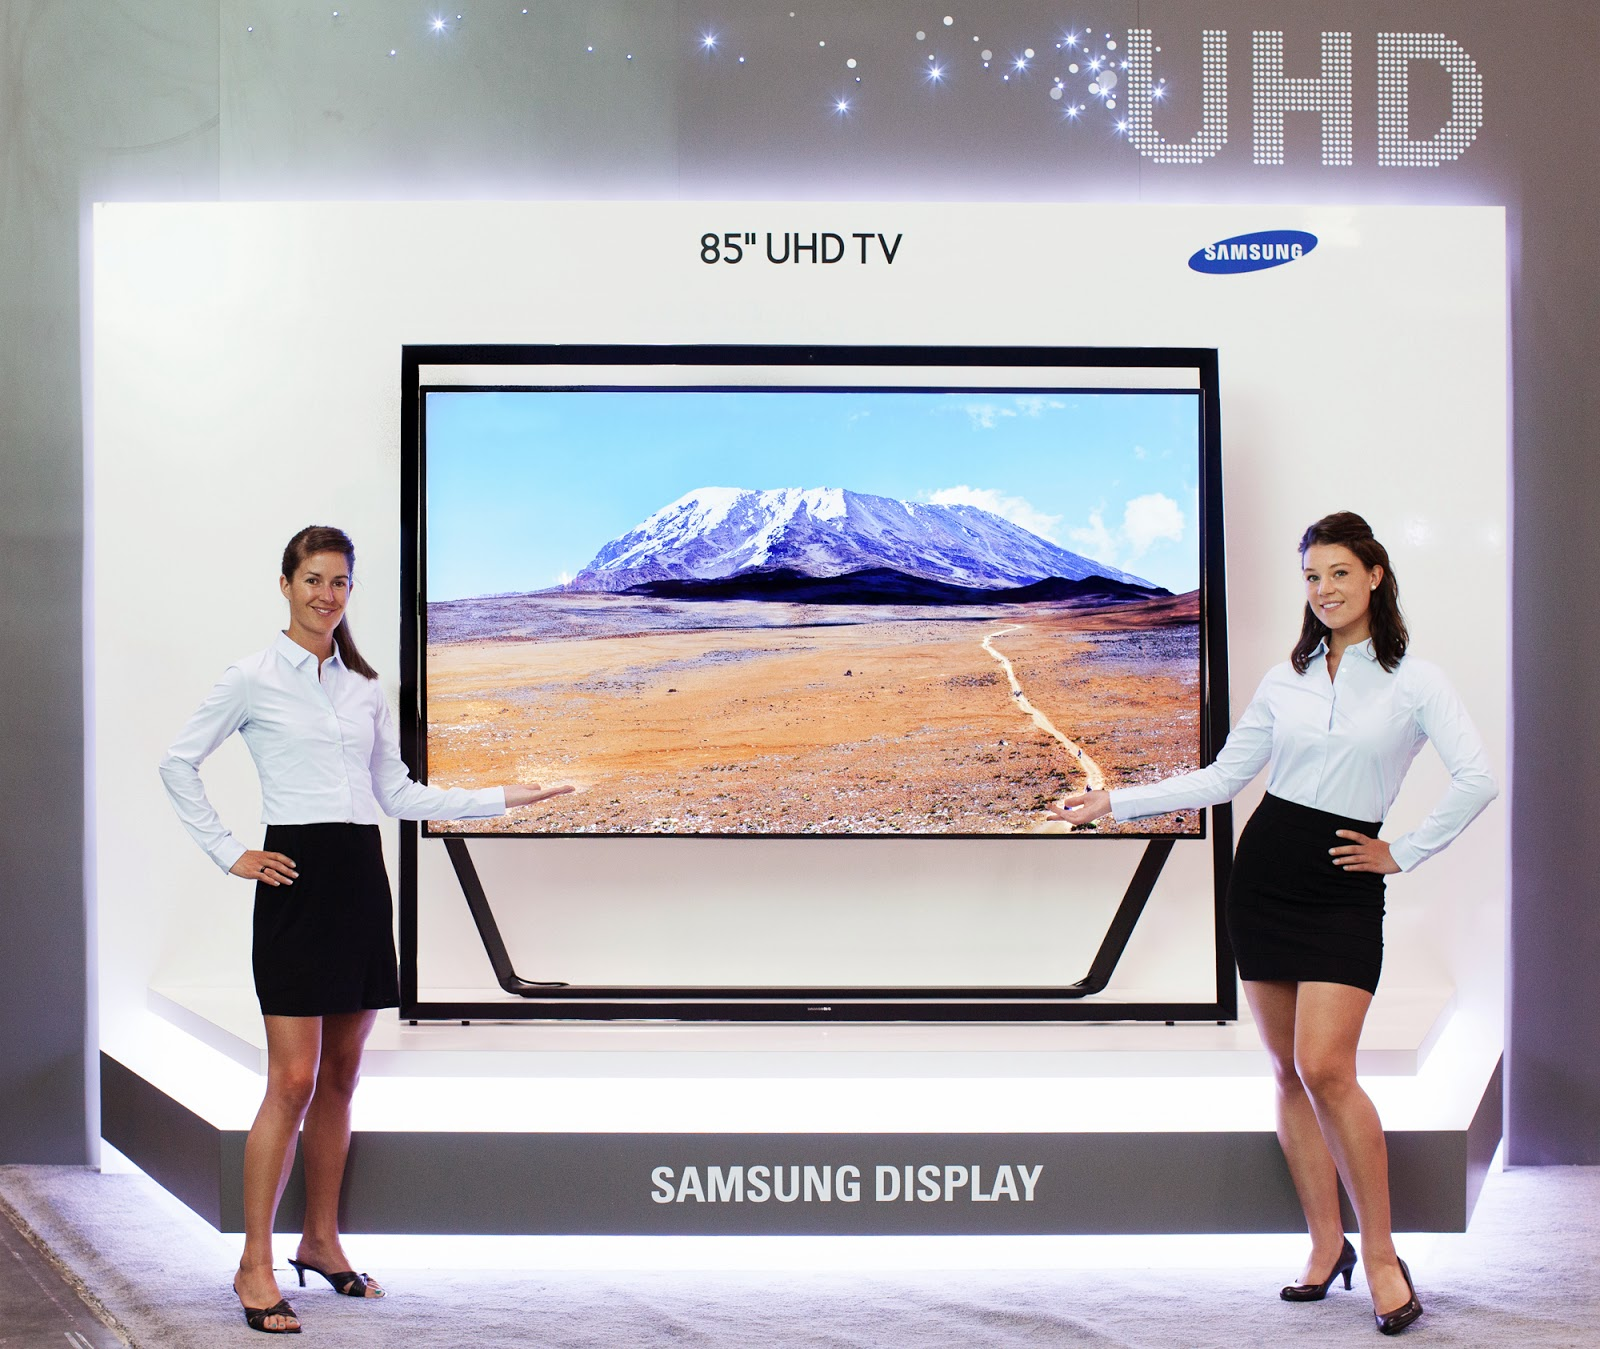 Review Samsung SUHD TV - Samsung UHD TV